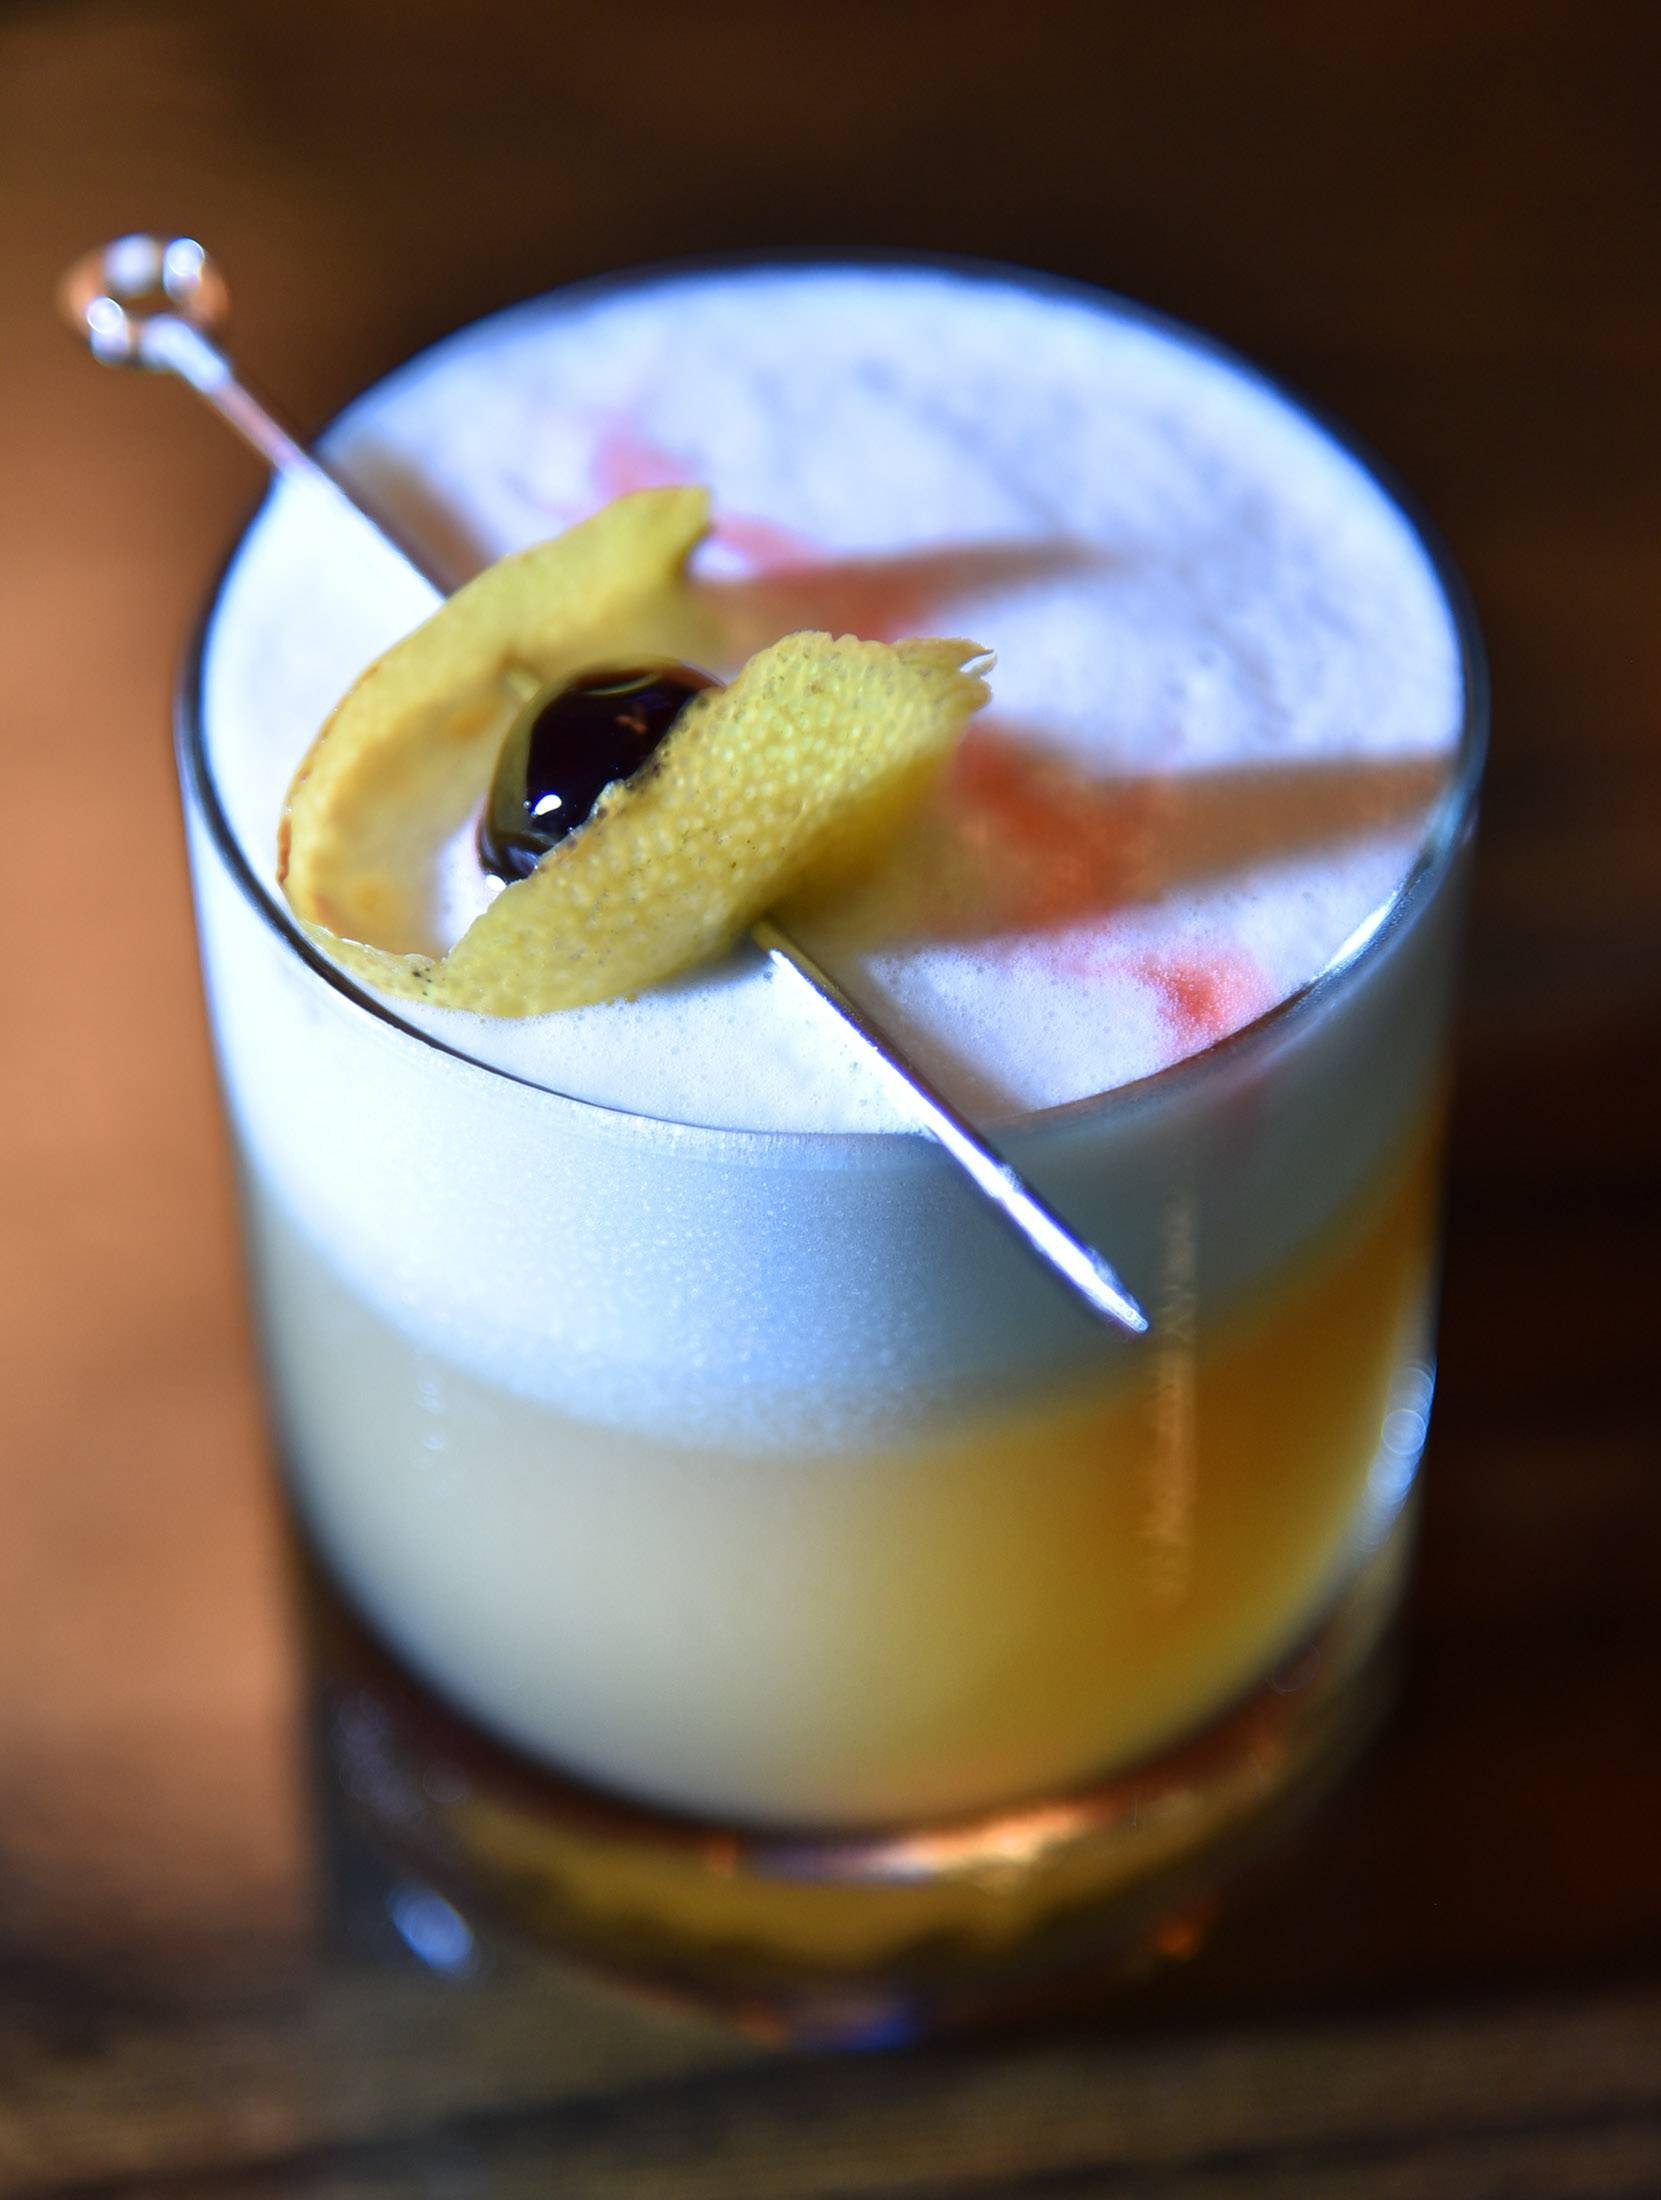 The Common Ground, a foamy drink made with amaretto, bourbon, lemon, sweet meringue and cherry, is on the Now Shaken menu at M Supper Club.